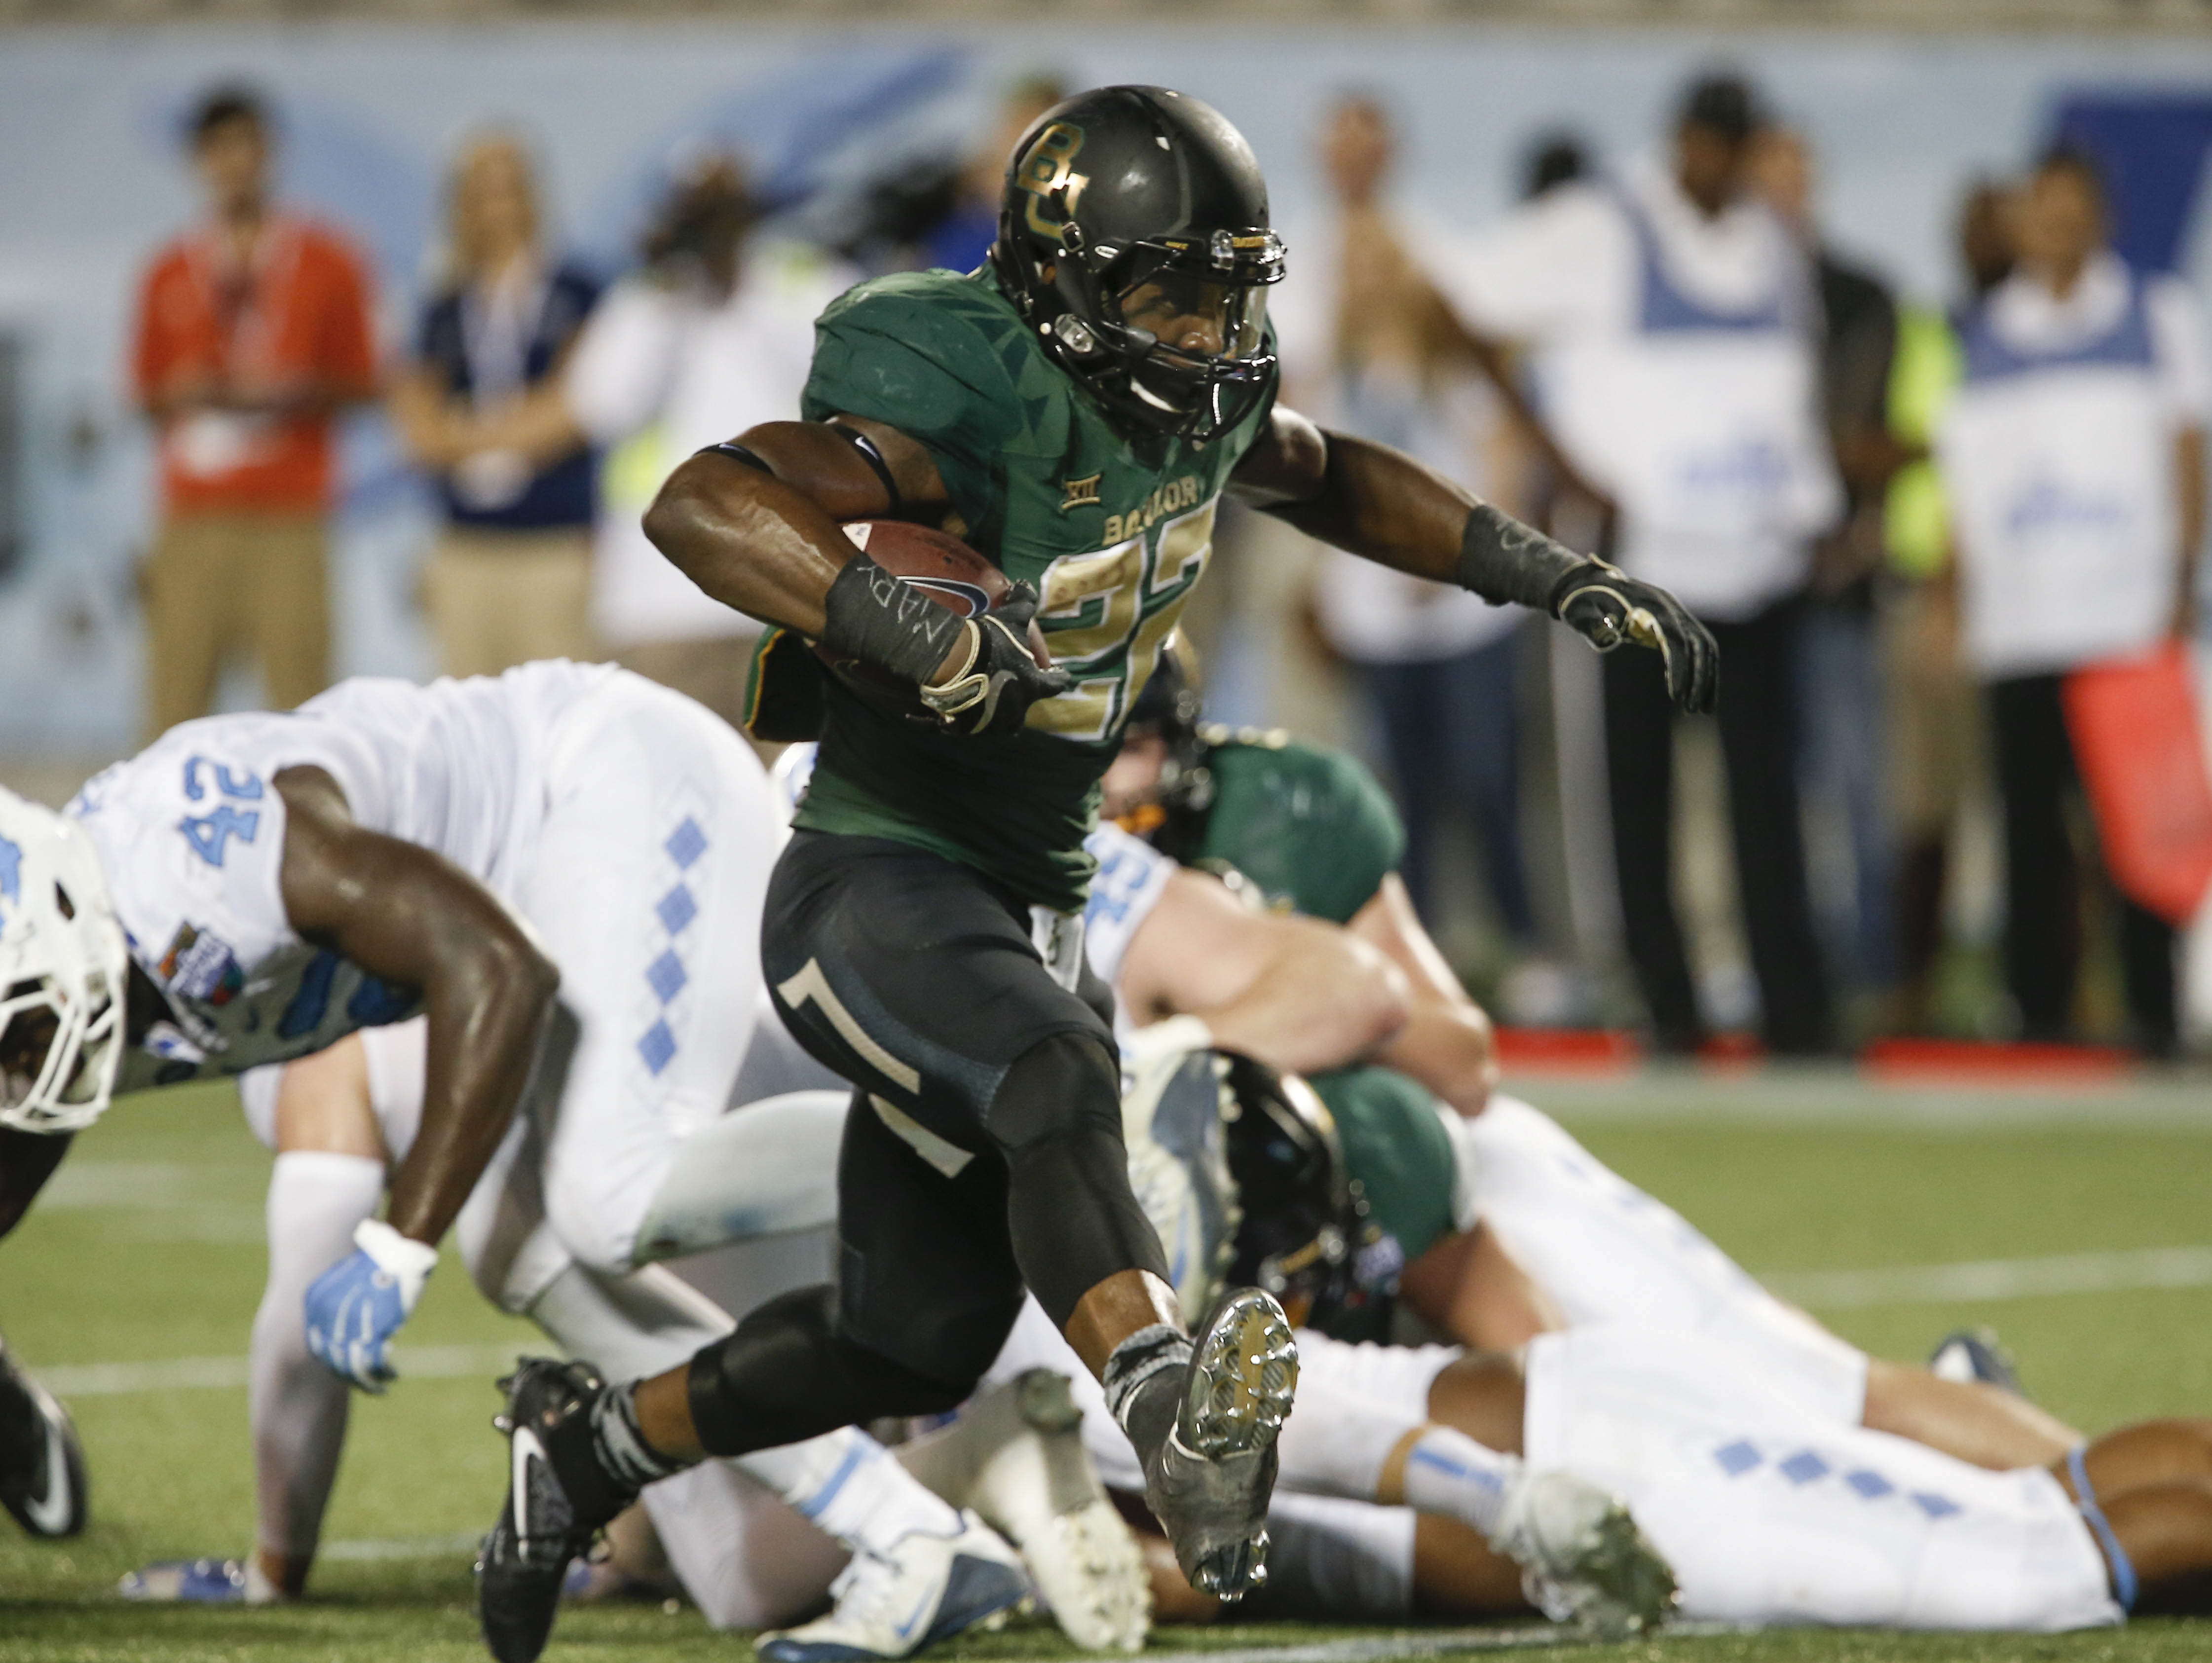 Pretty sure Baylor just ripped off another 145 yard run